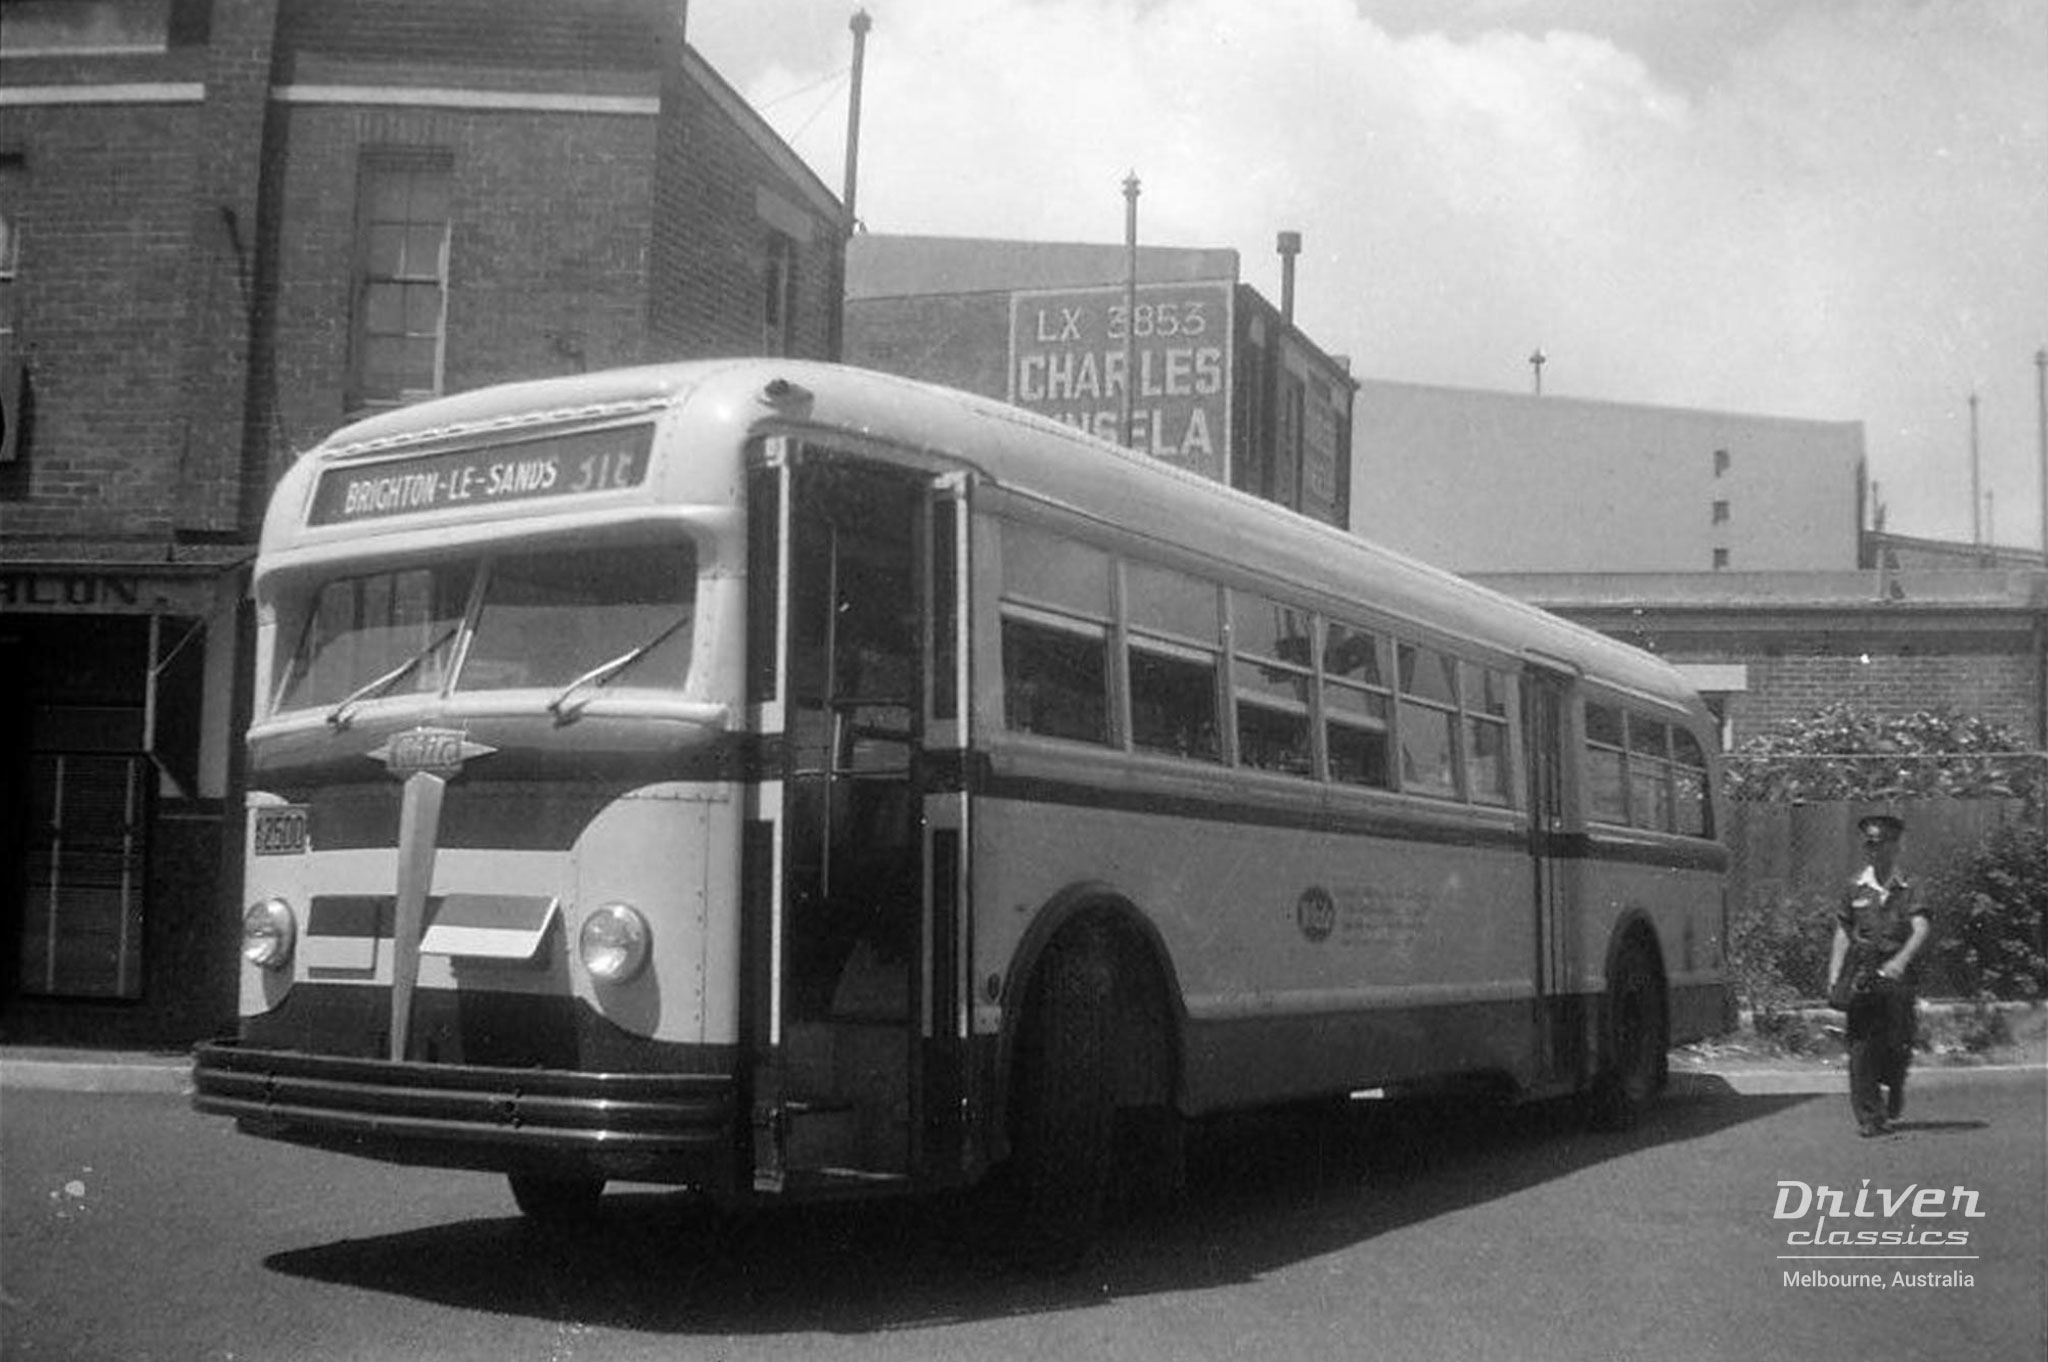 White 798-12 bus with early 1950's paint scheme